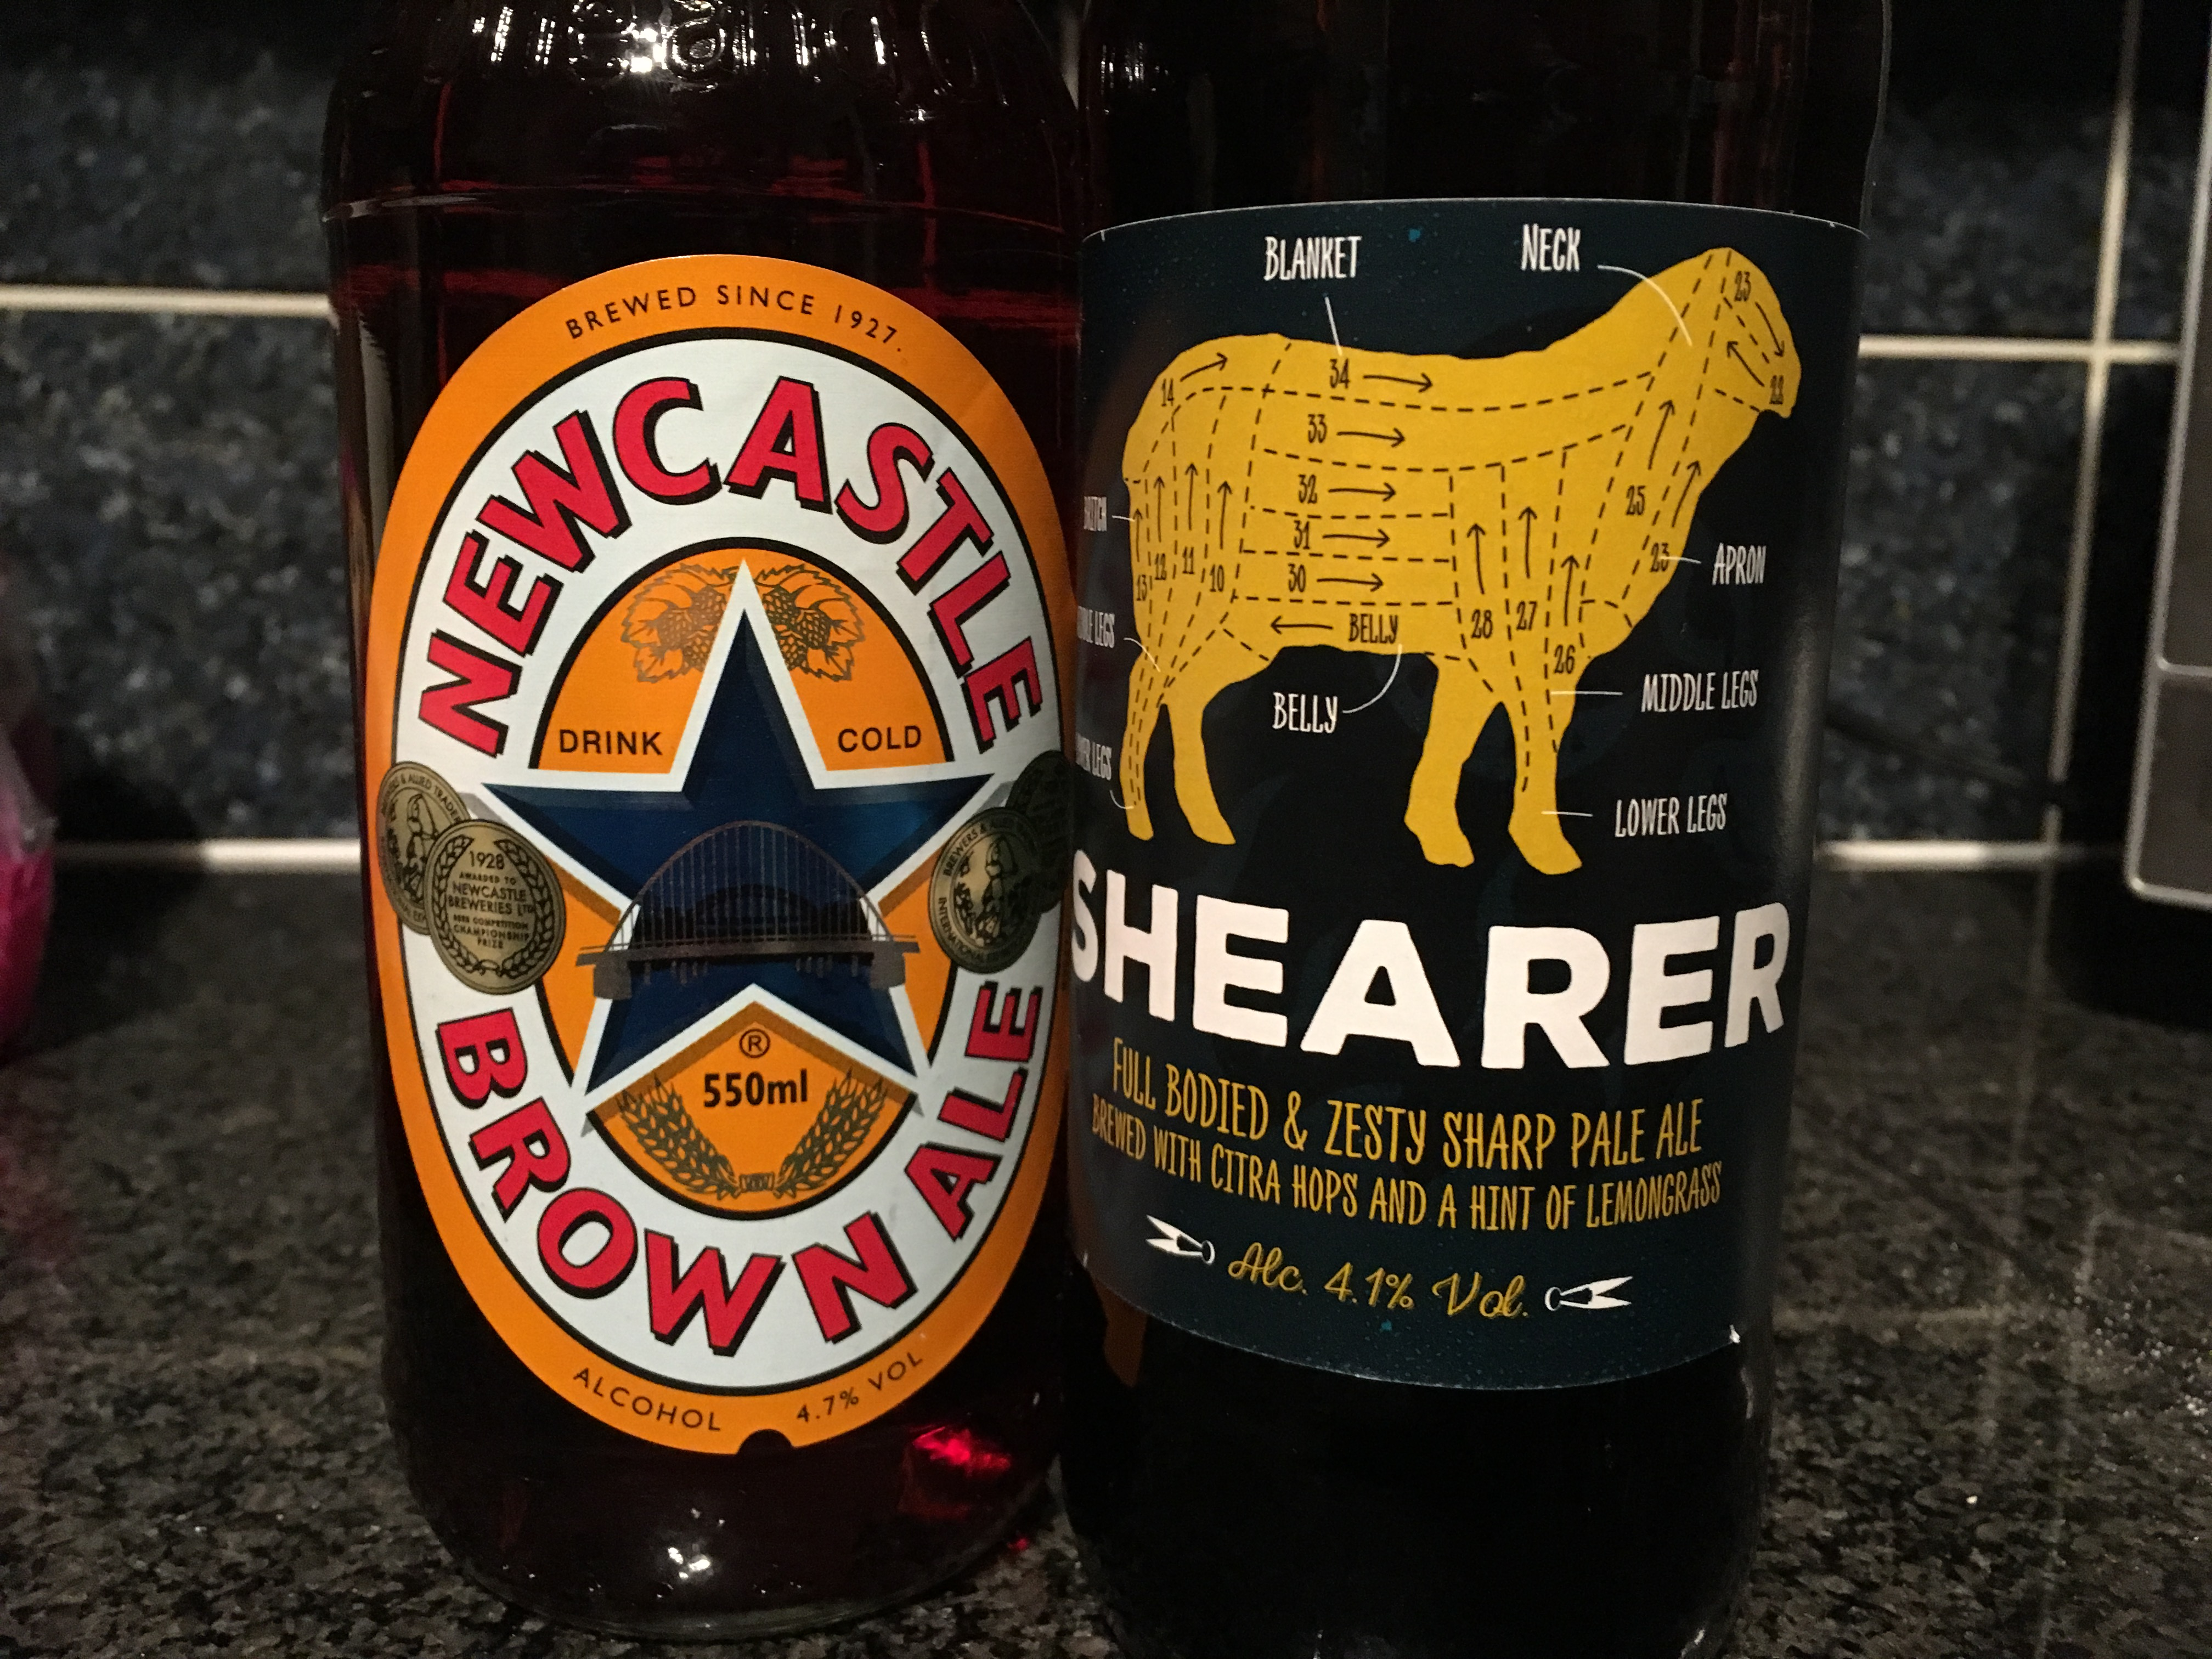 Shearer and Newcastle Brown Ale